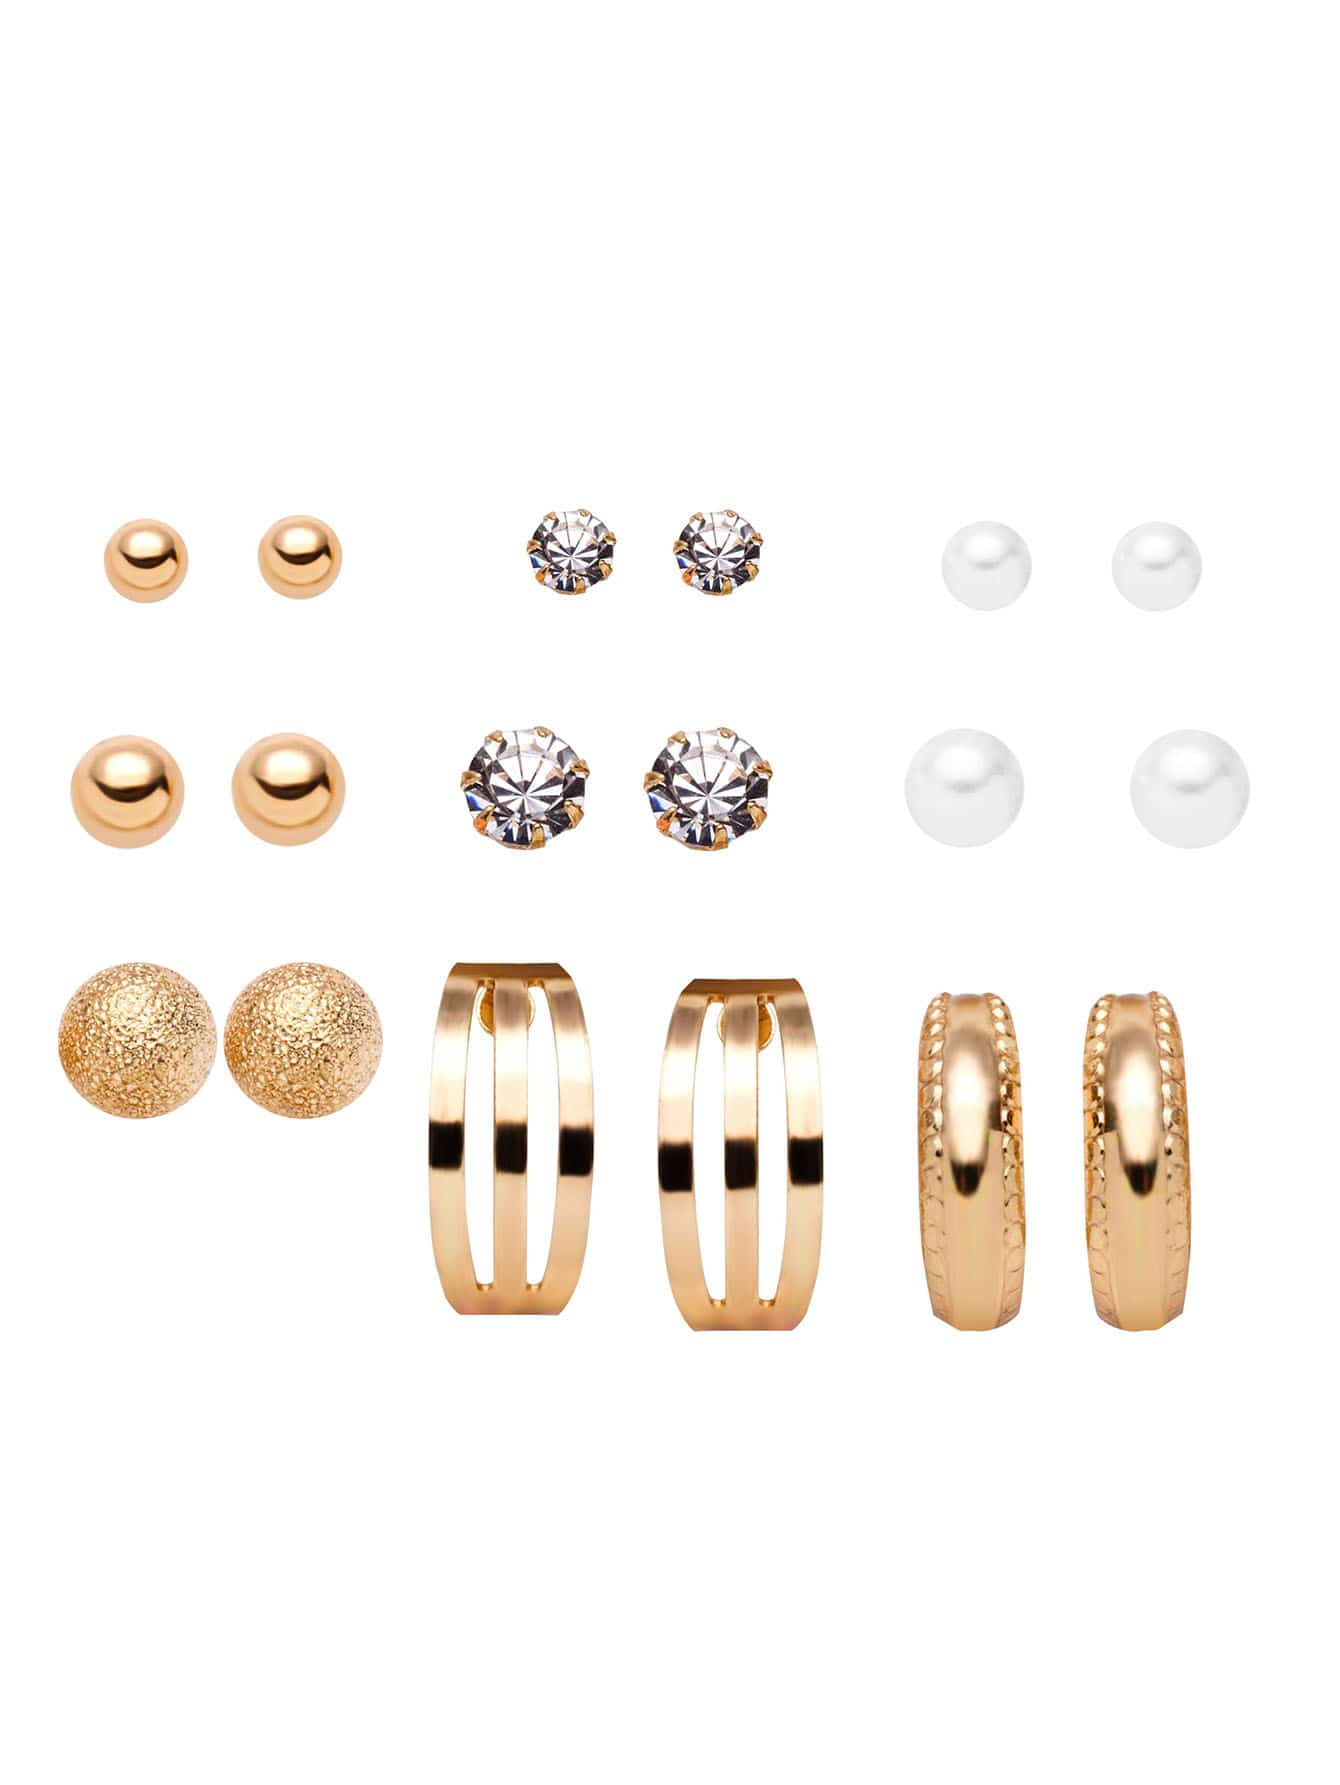 Gold Plated Geometric Gemstone Stud Earrings Set